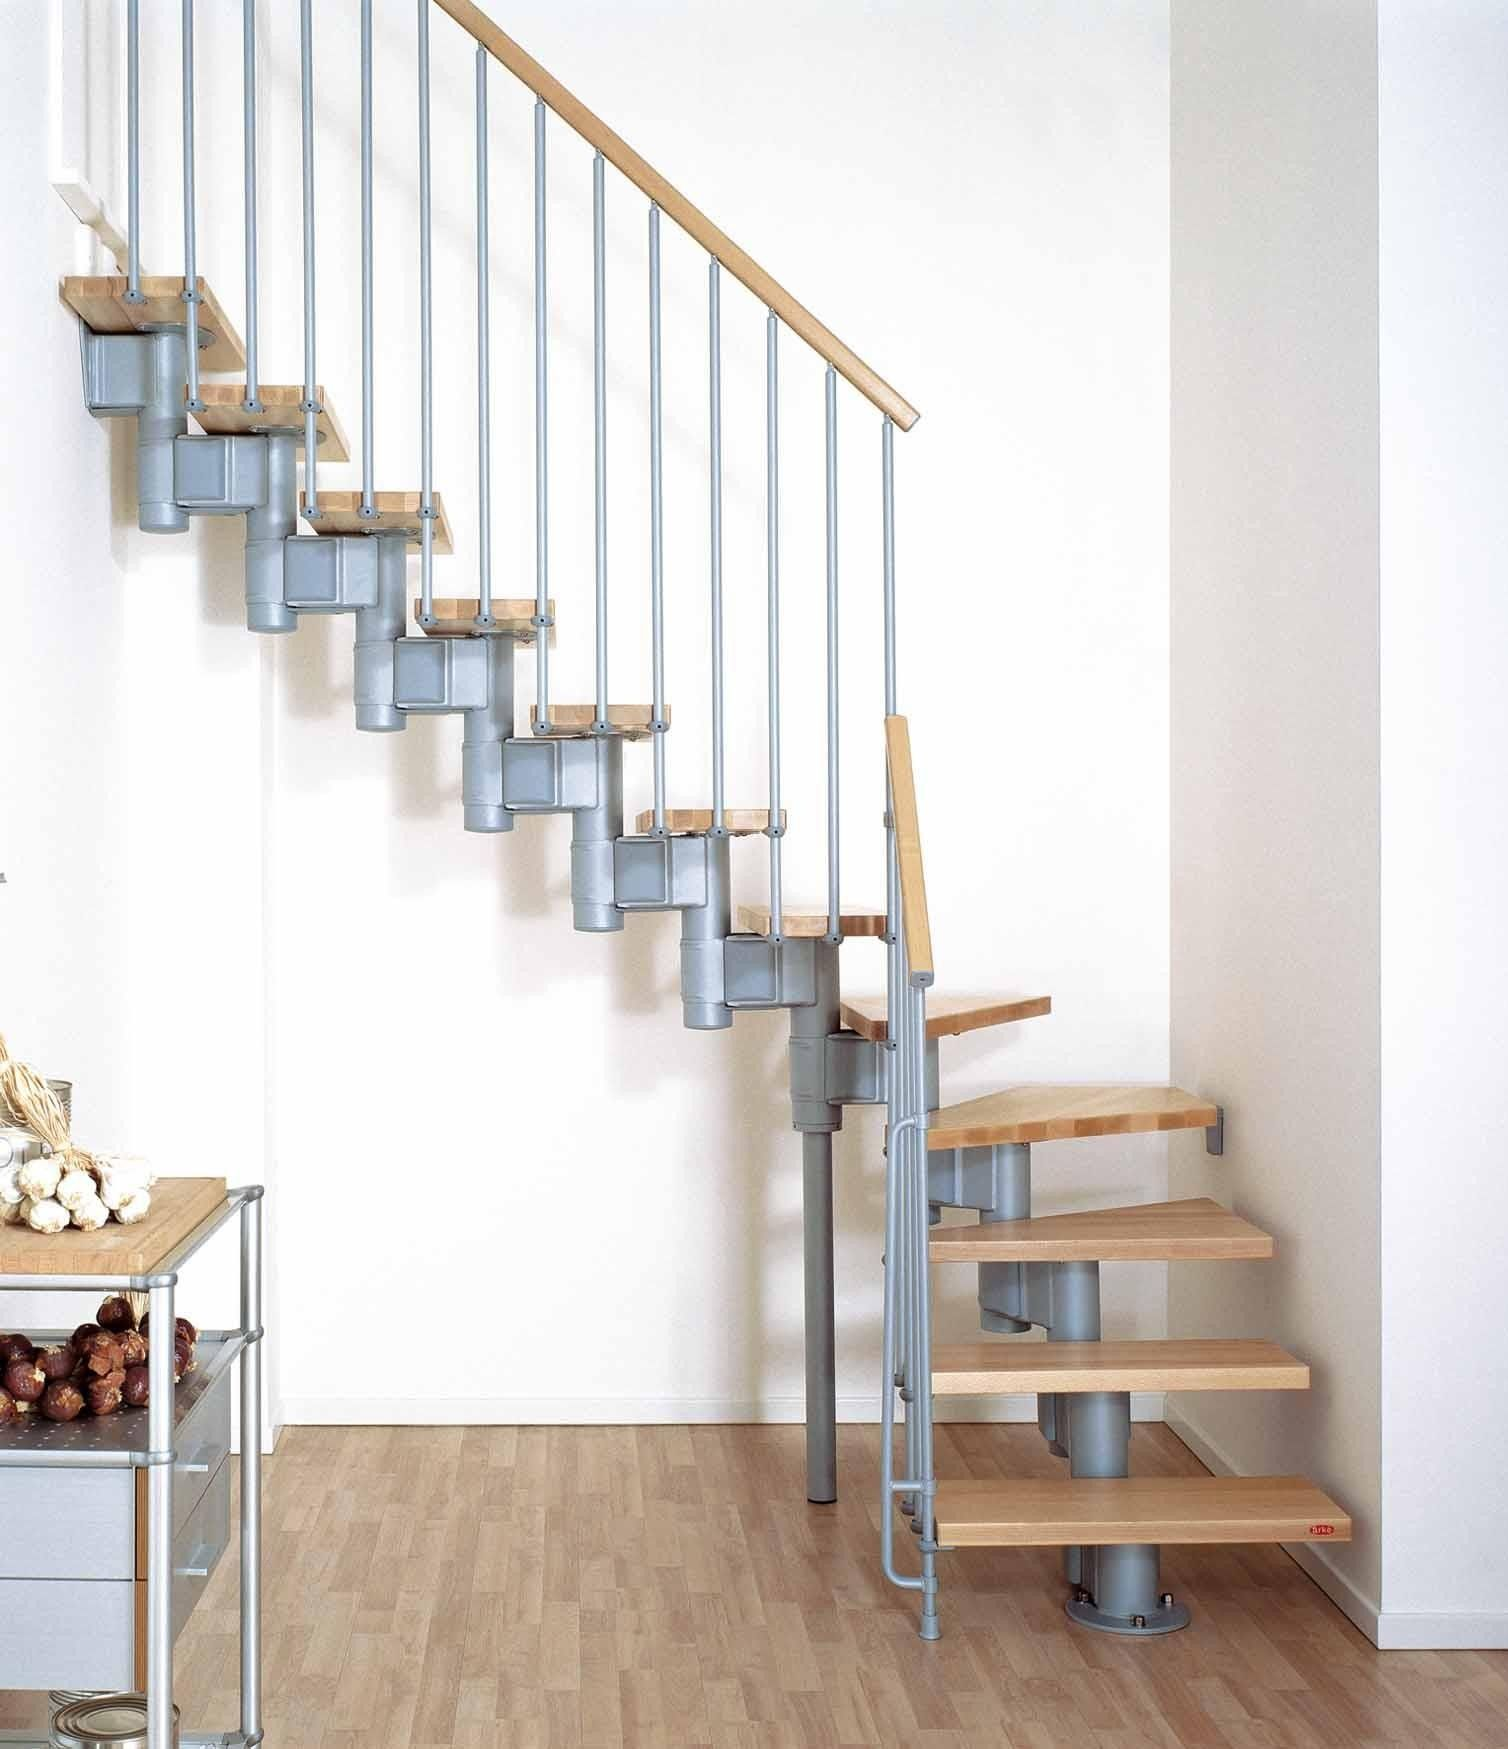 Staircase Designs For Small Spaces Furniture Breathtaking Spiral Staircases For Tight